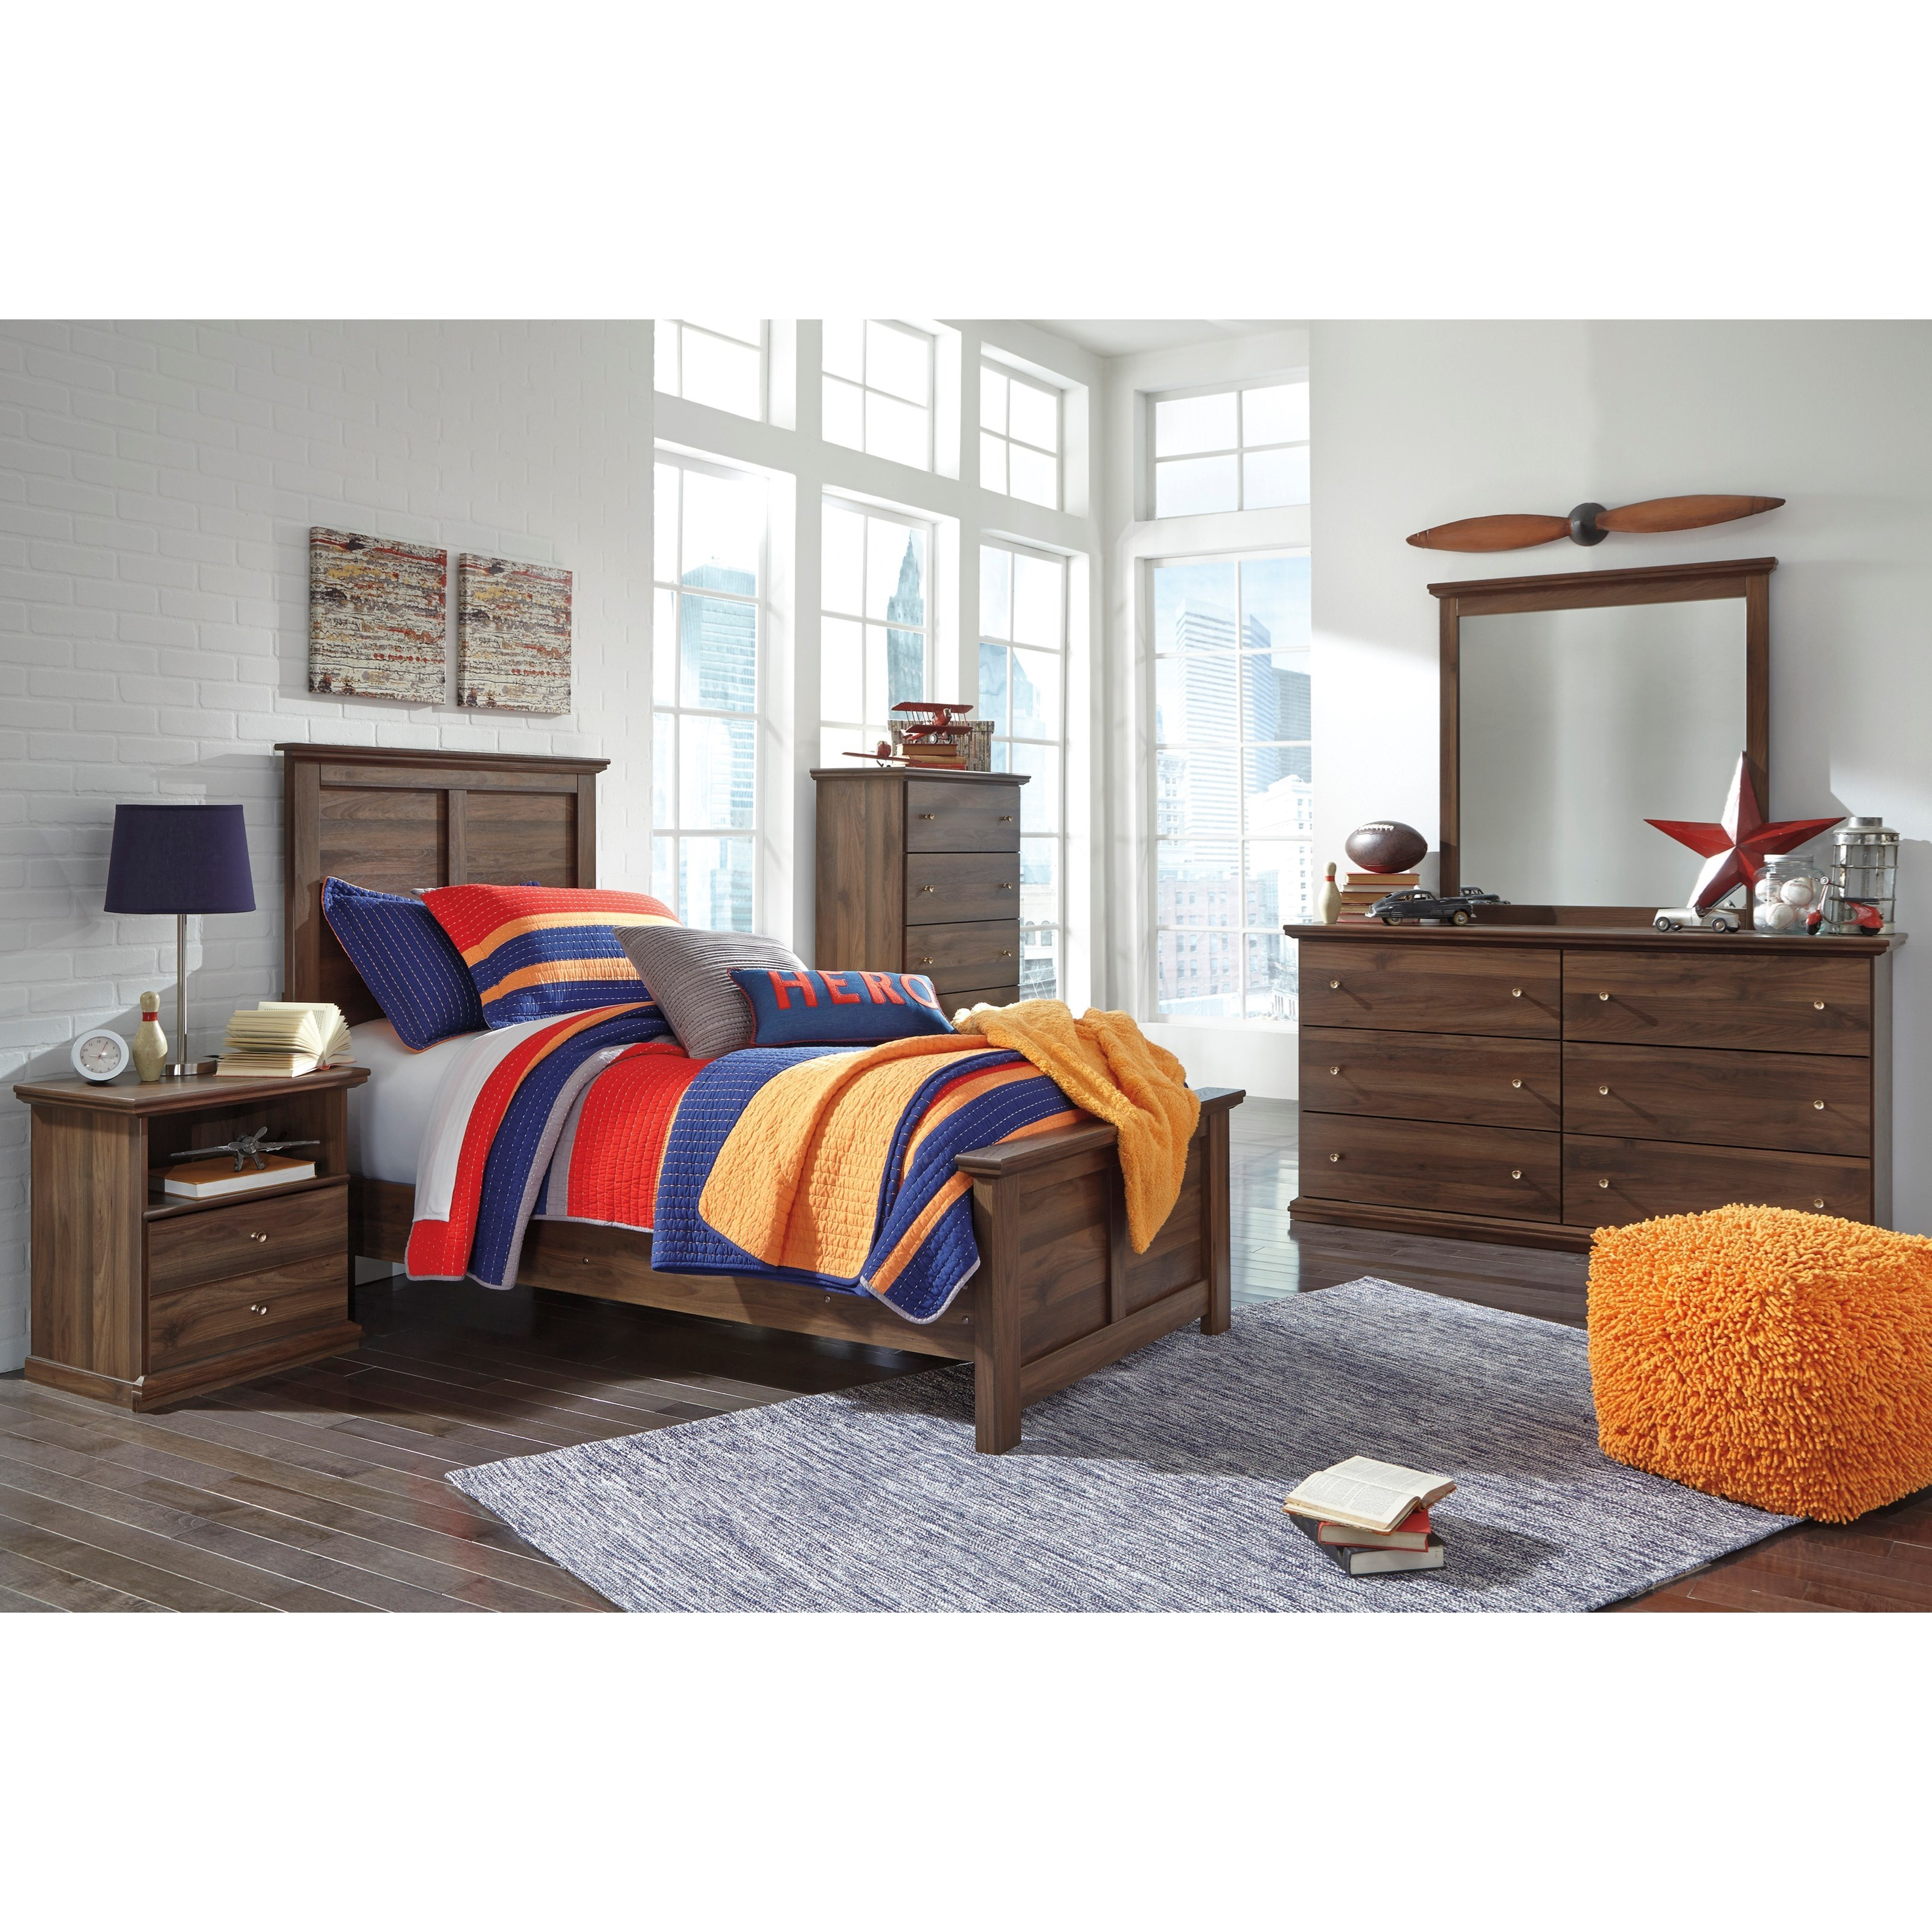 Signature Design by Ashley Burminson Twin Bedroom Group - Item Number: B135 T Bedroom Group 1